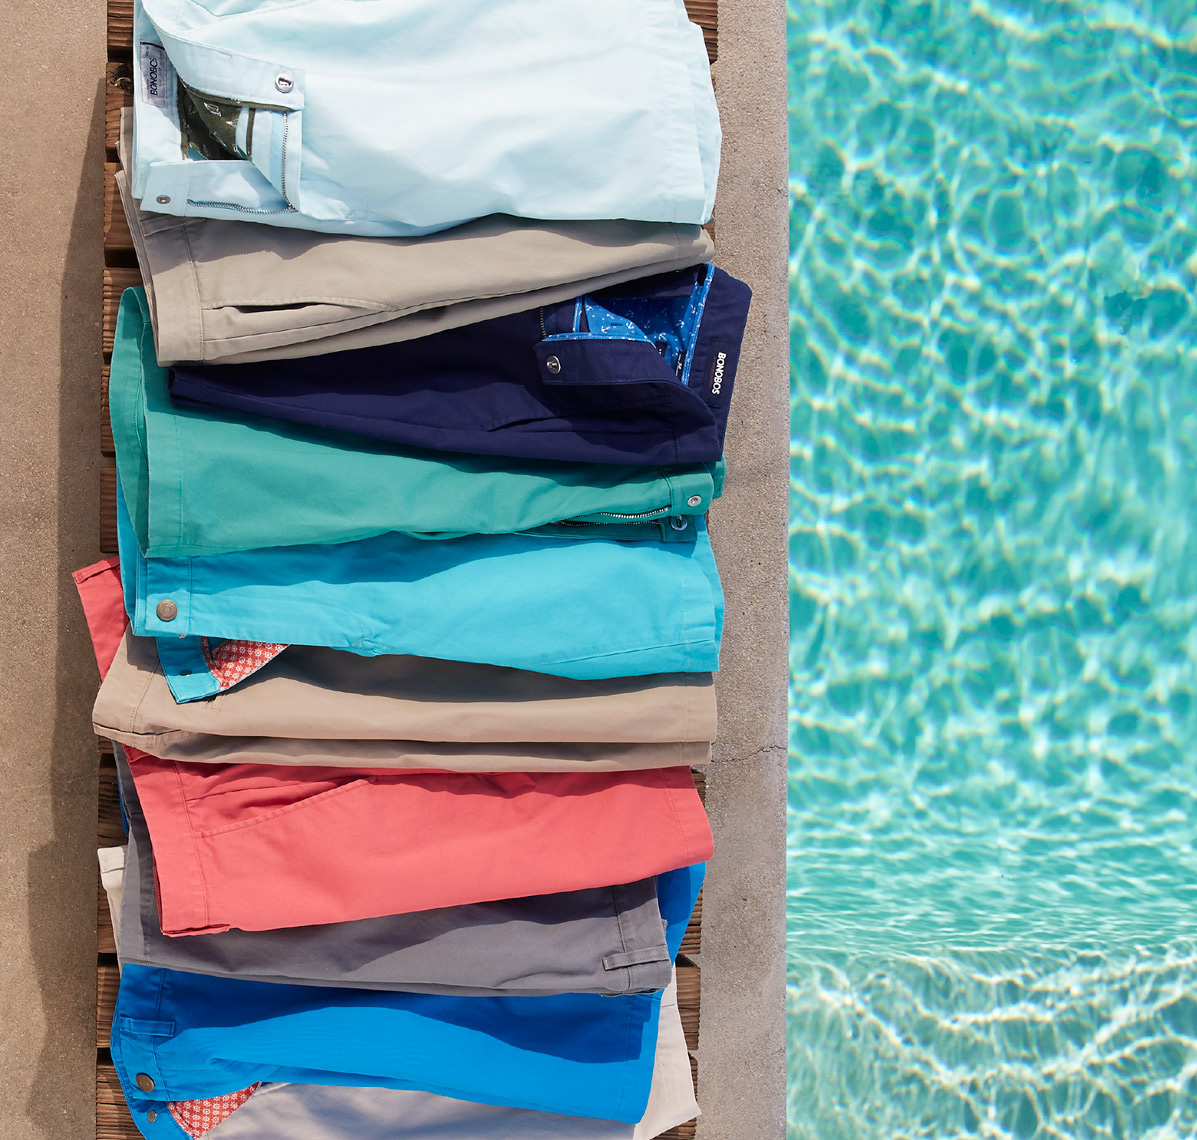 downward view of selection of colorful shorts folded on cement next to pool San Francisco product photographer